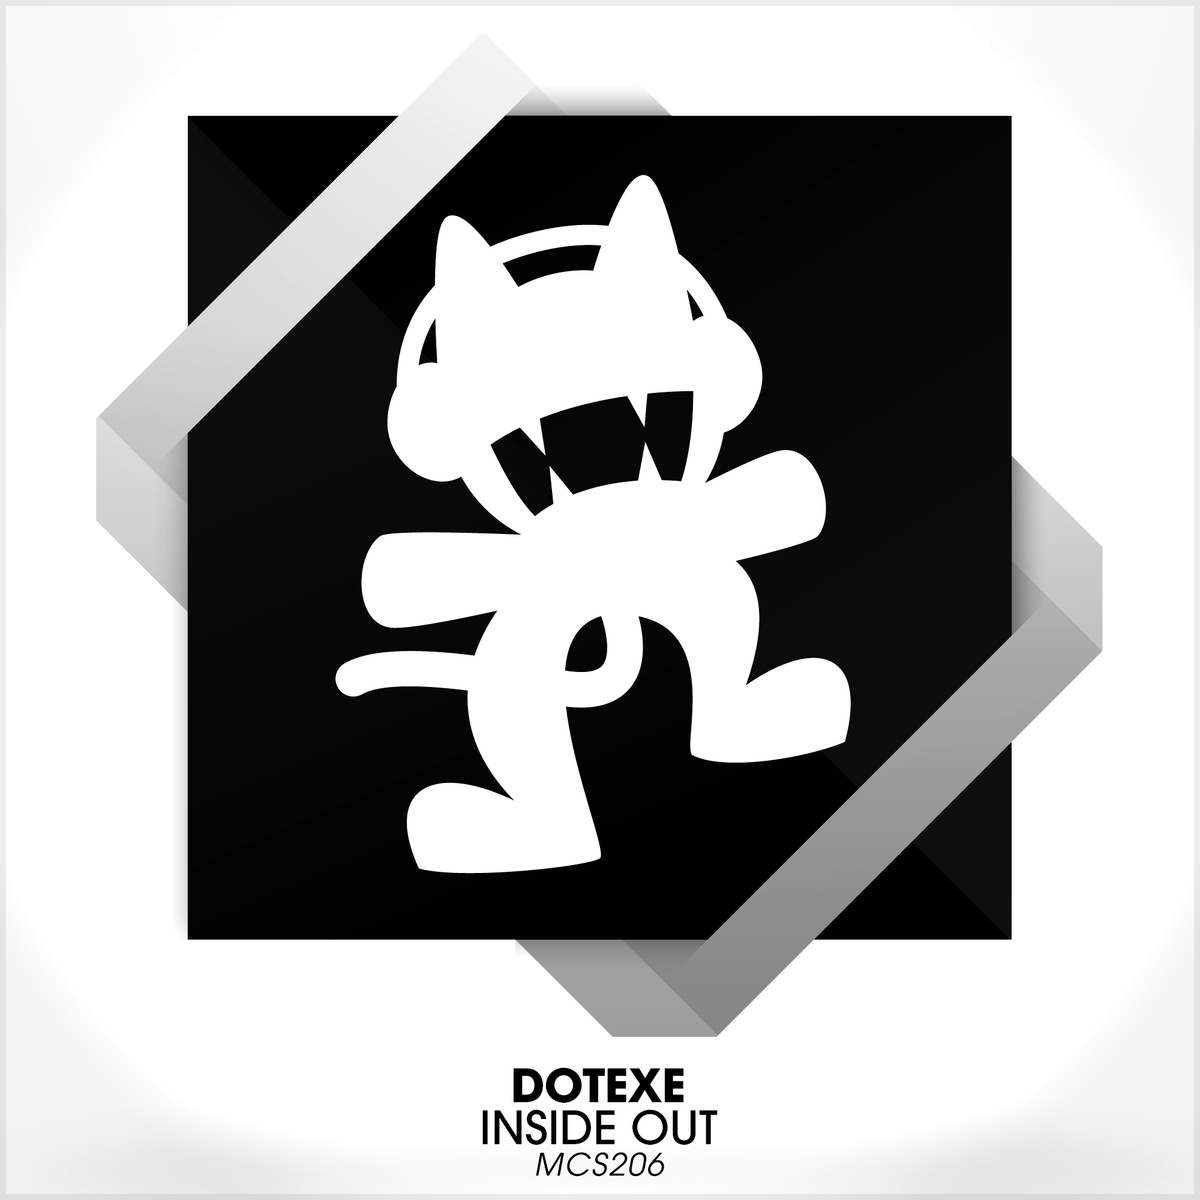 Inside Out (DotEXE)